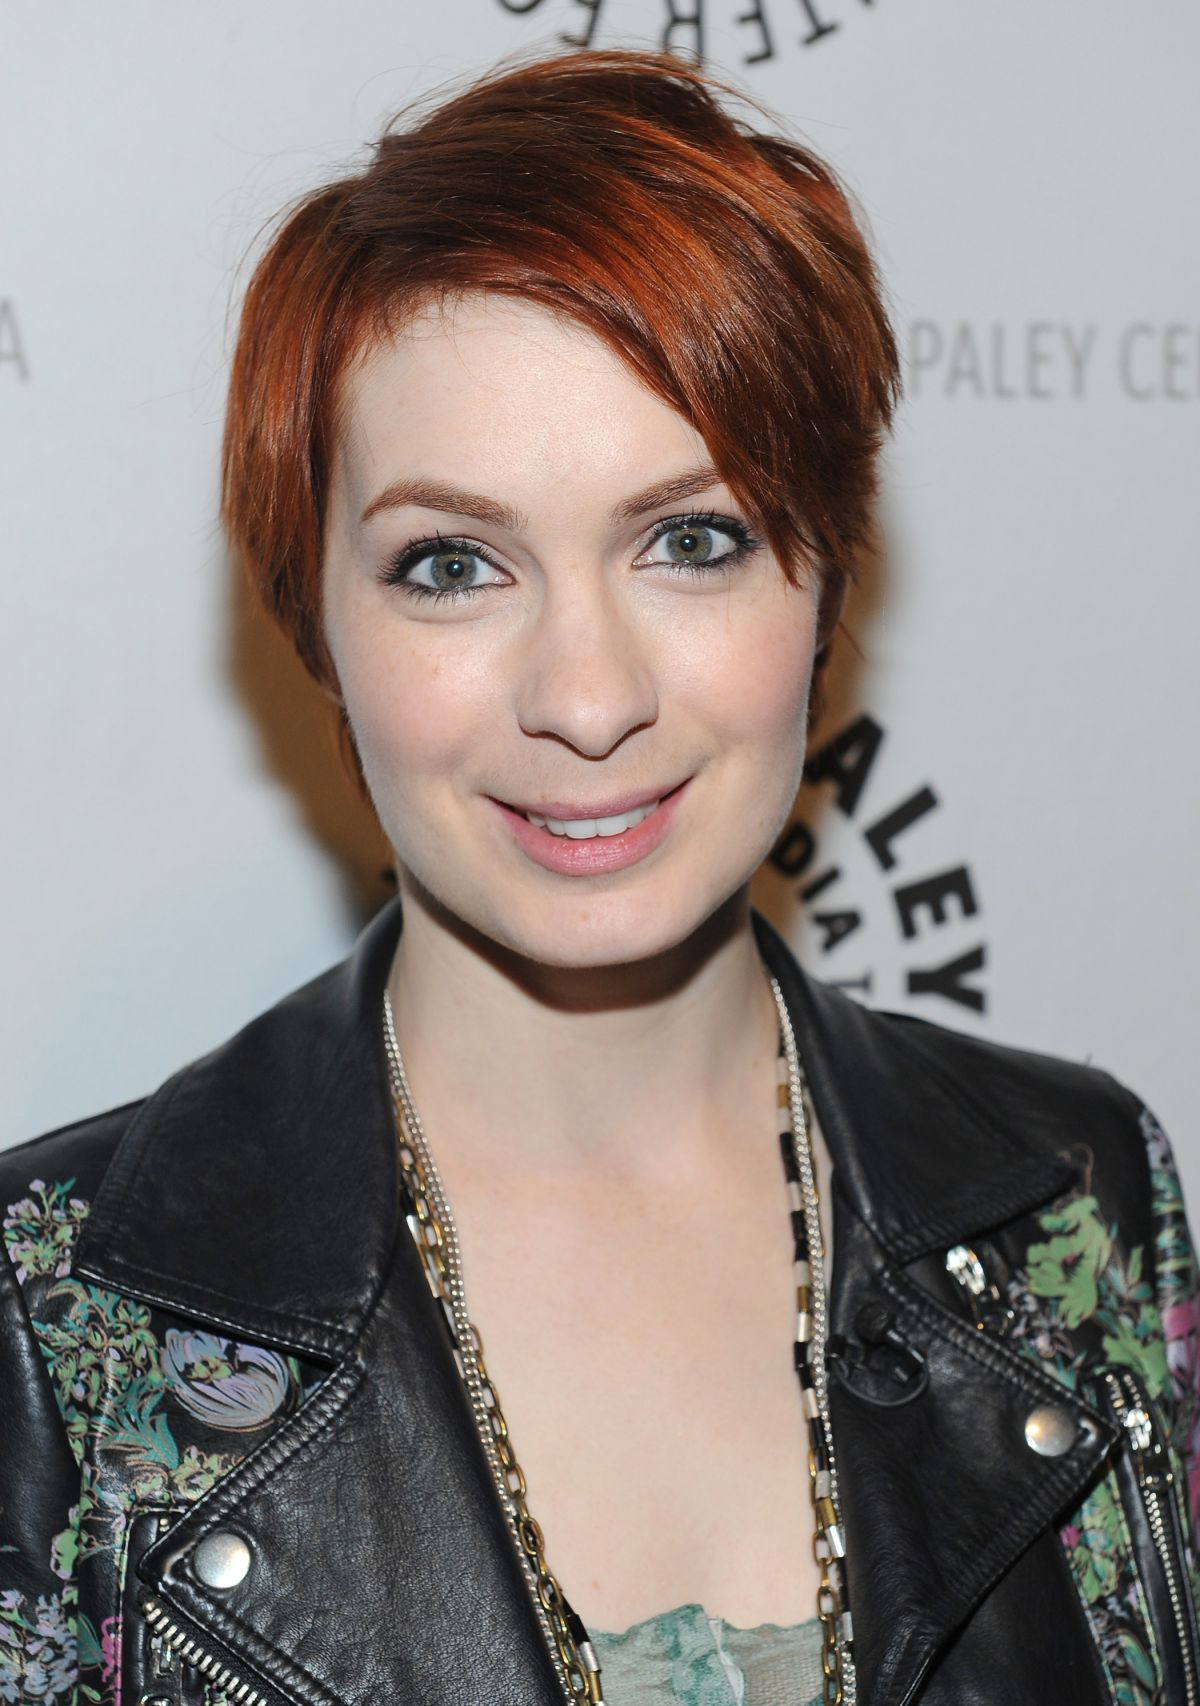 Felicia Day Archives - Celebzz